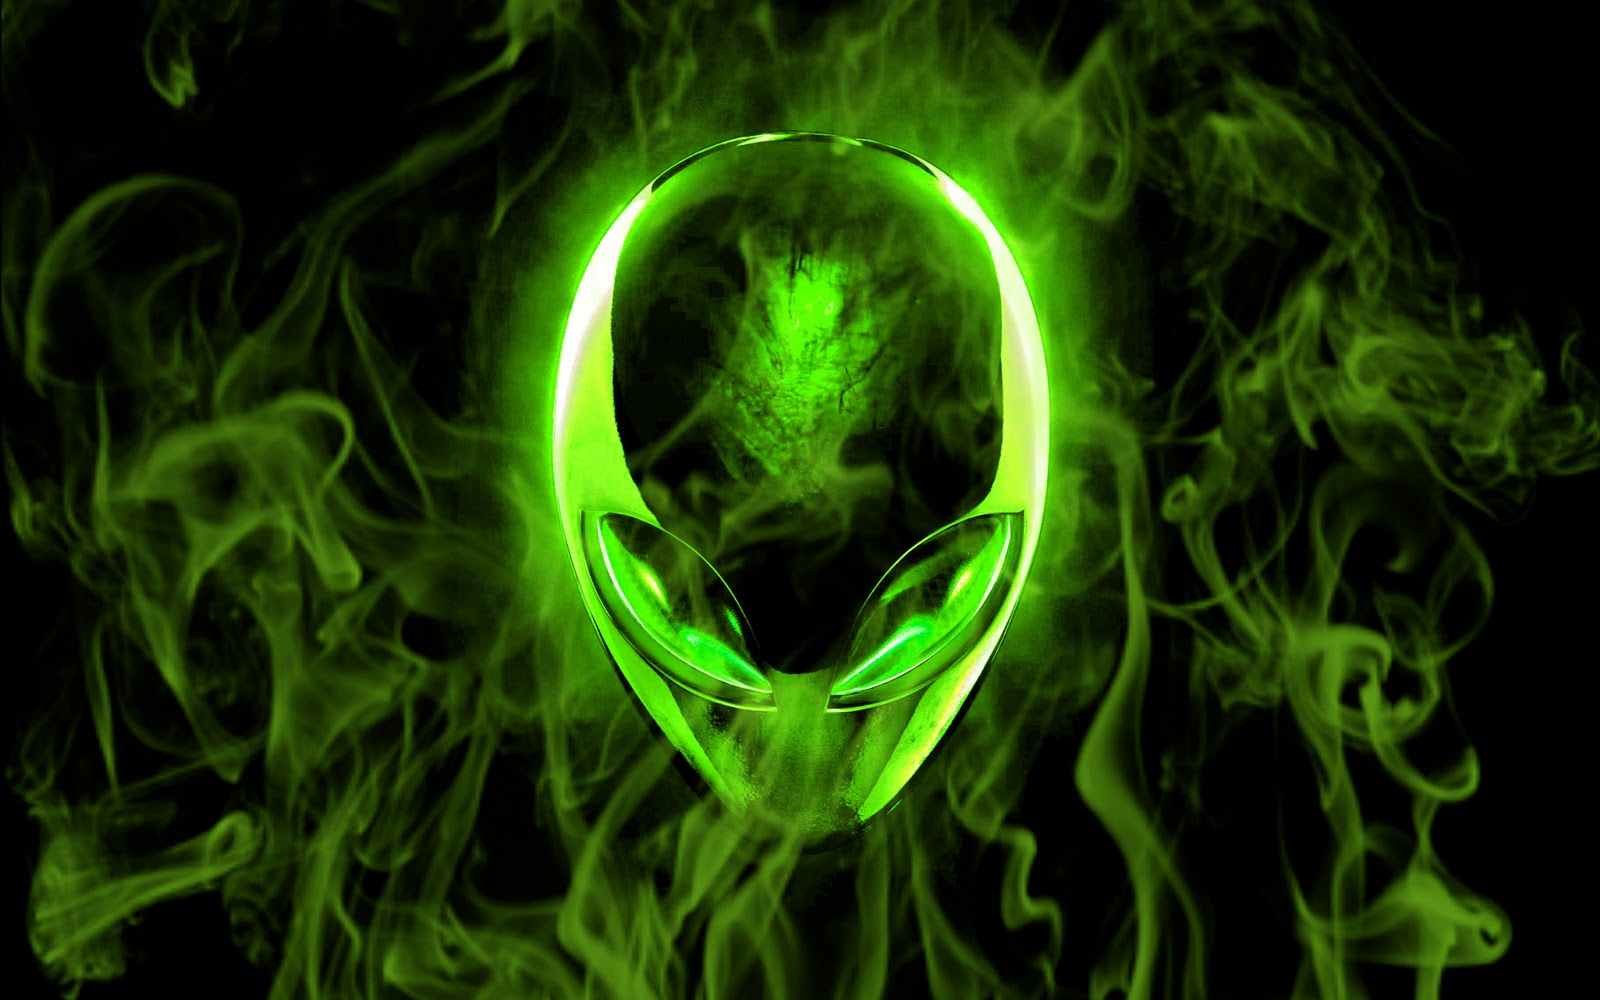 Intelligible alienware desktop themes that would